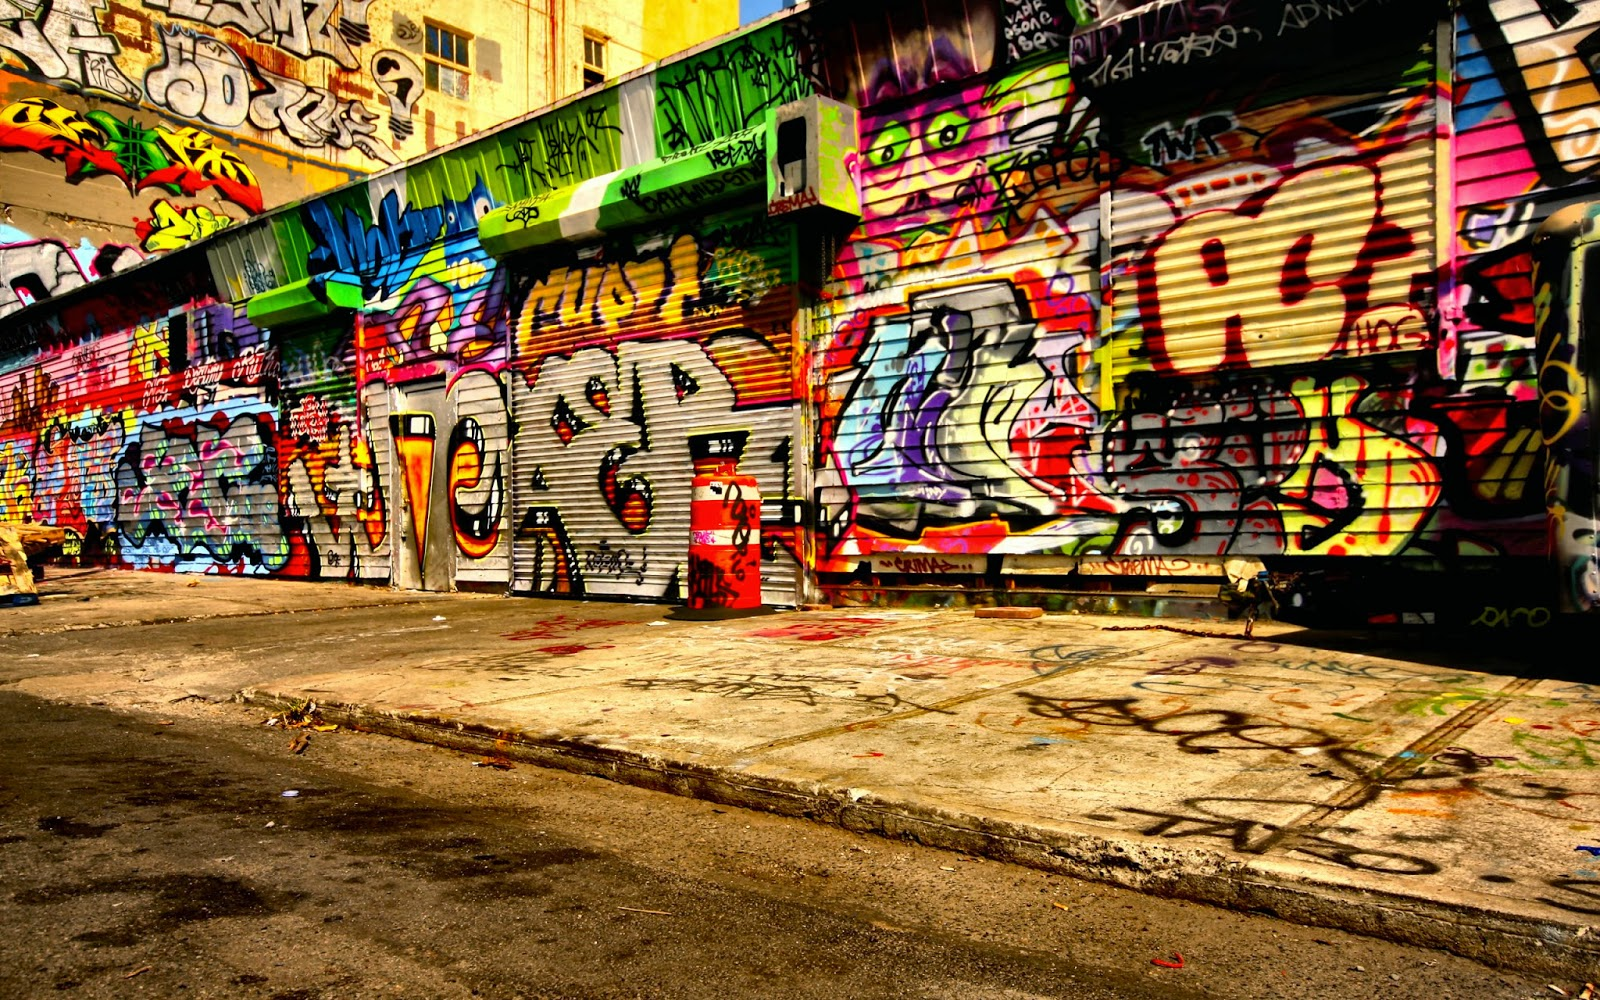 Some amazing street graffiti wallpaper my free for Wall art wallpaper